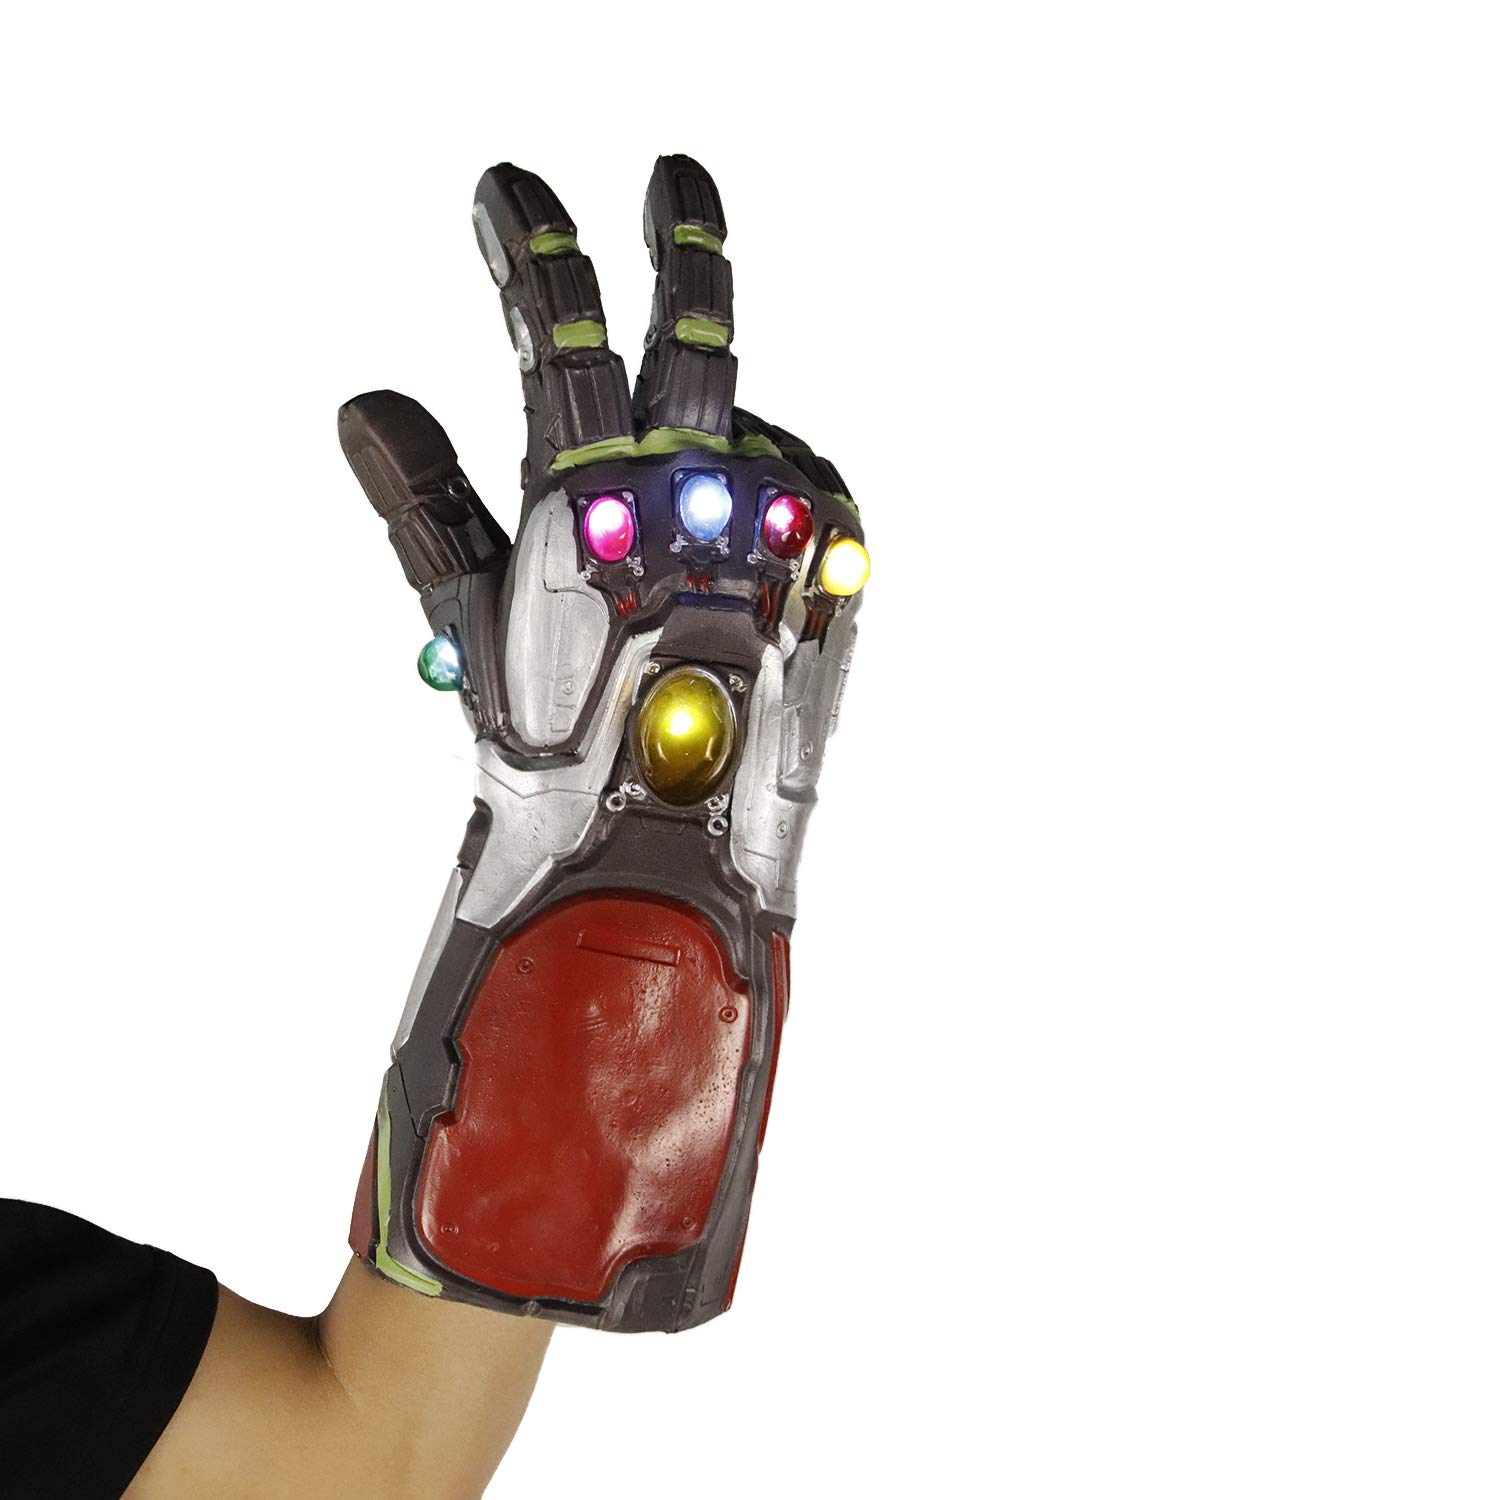 Arm Avengers 4 Endgame Black Infinity Gauntlet LED Latex Superhero Gloves Iron Man Fist Light Up for The Avengers Cosplay Prop Costume